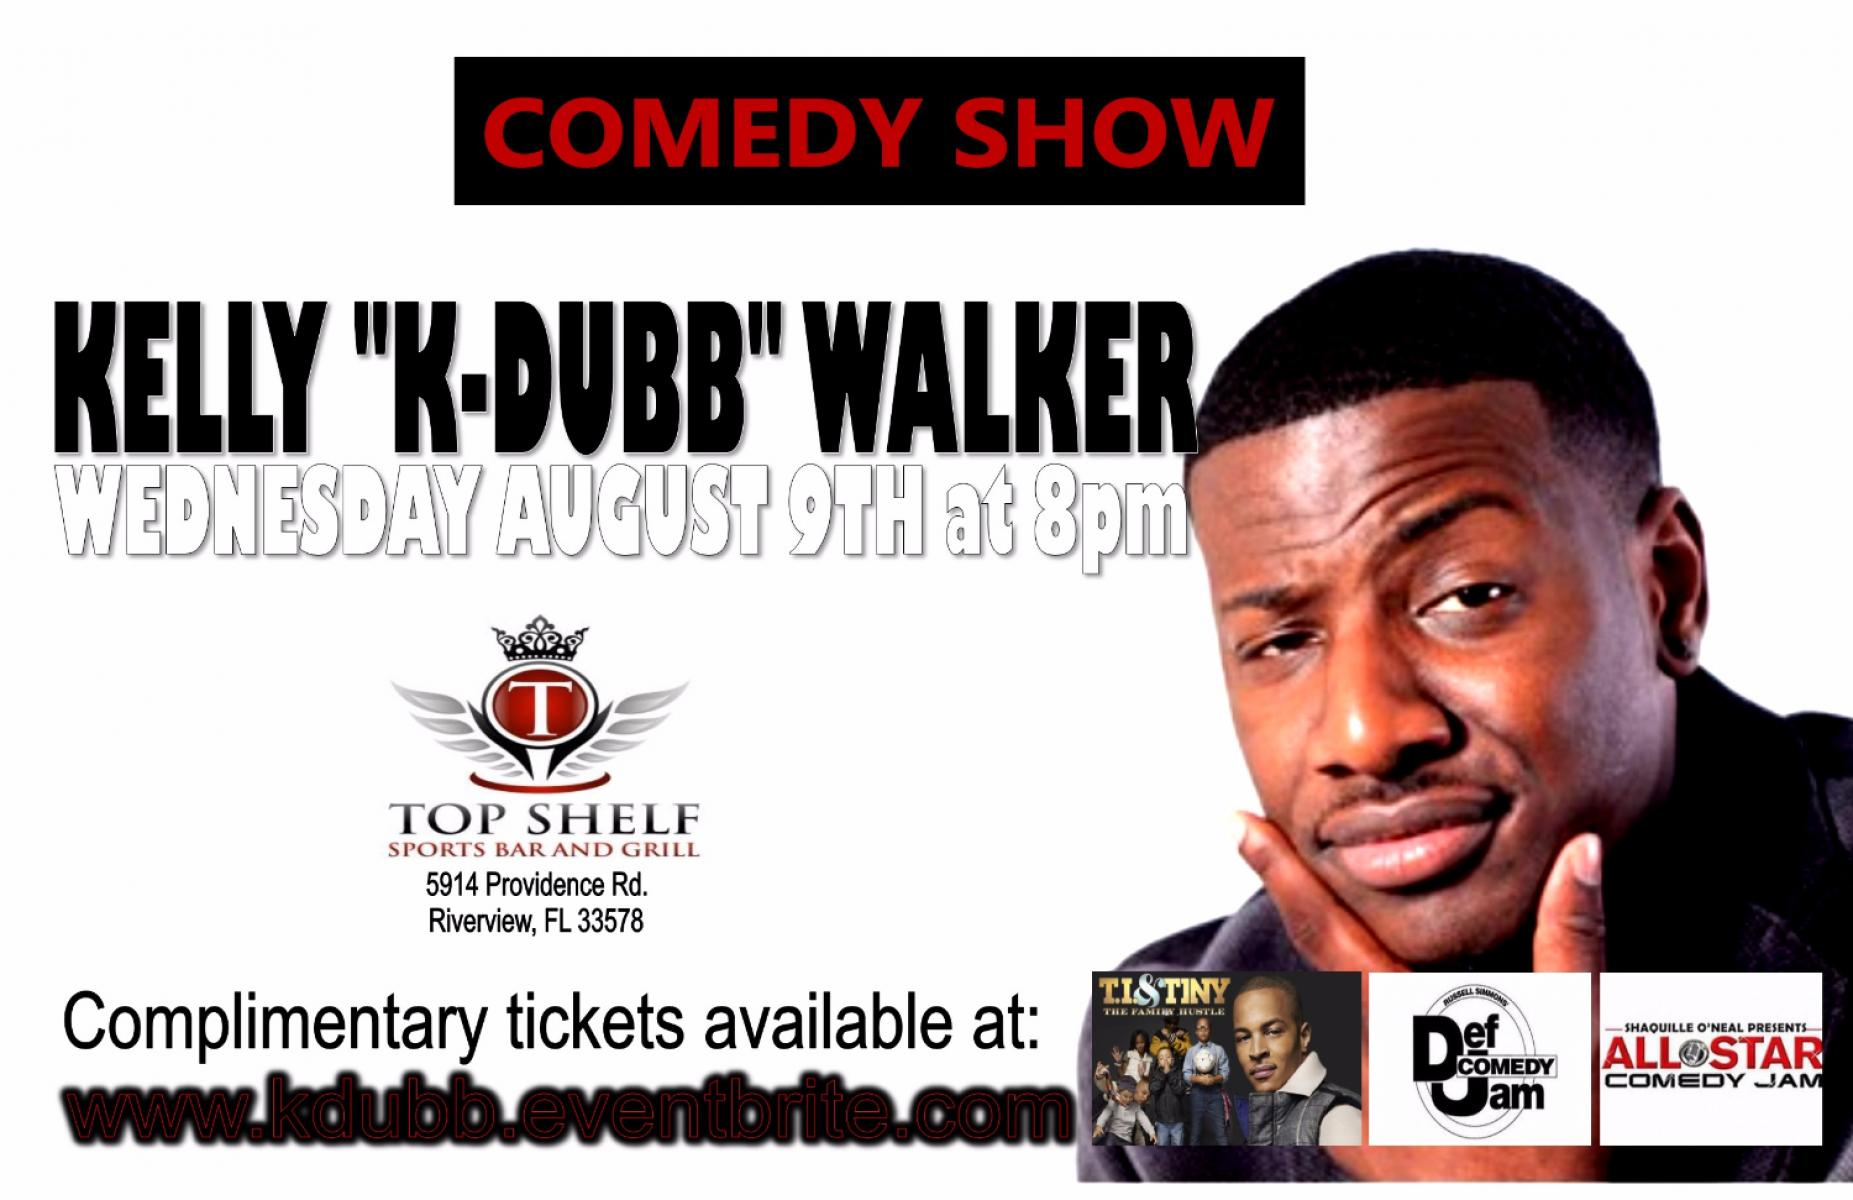 Comedy Show with K DUBB